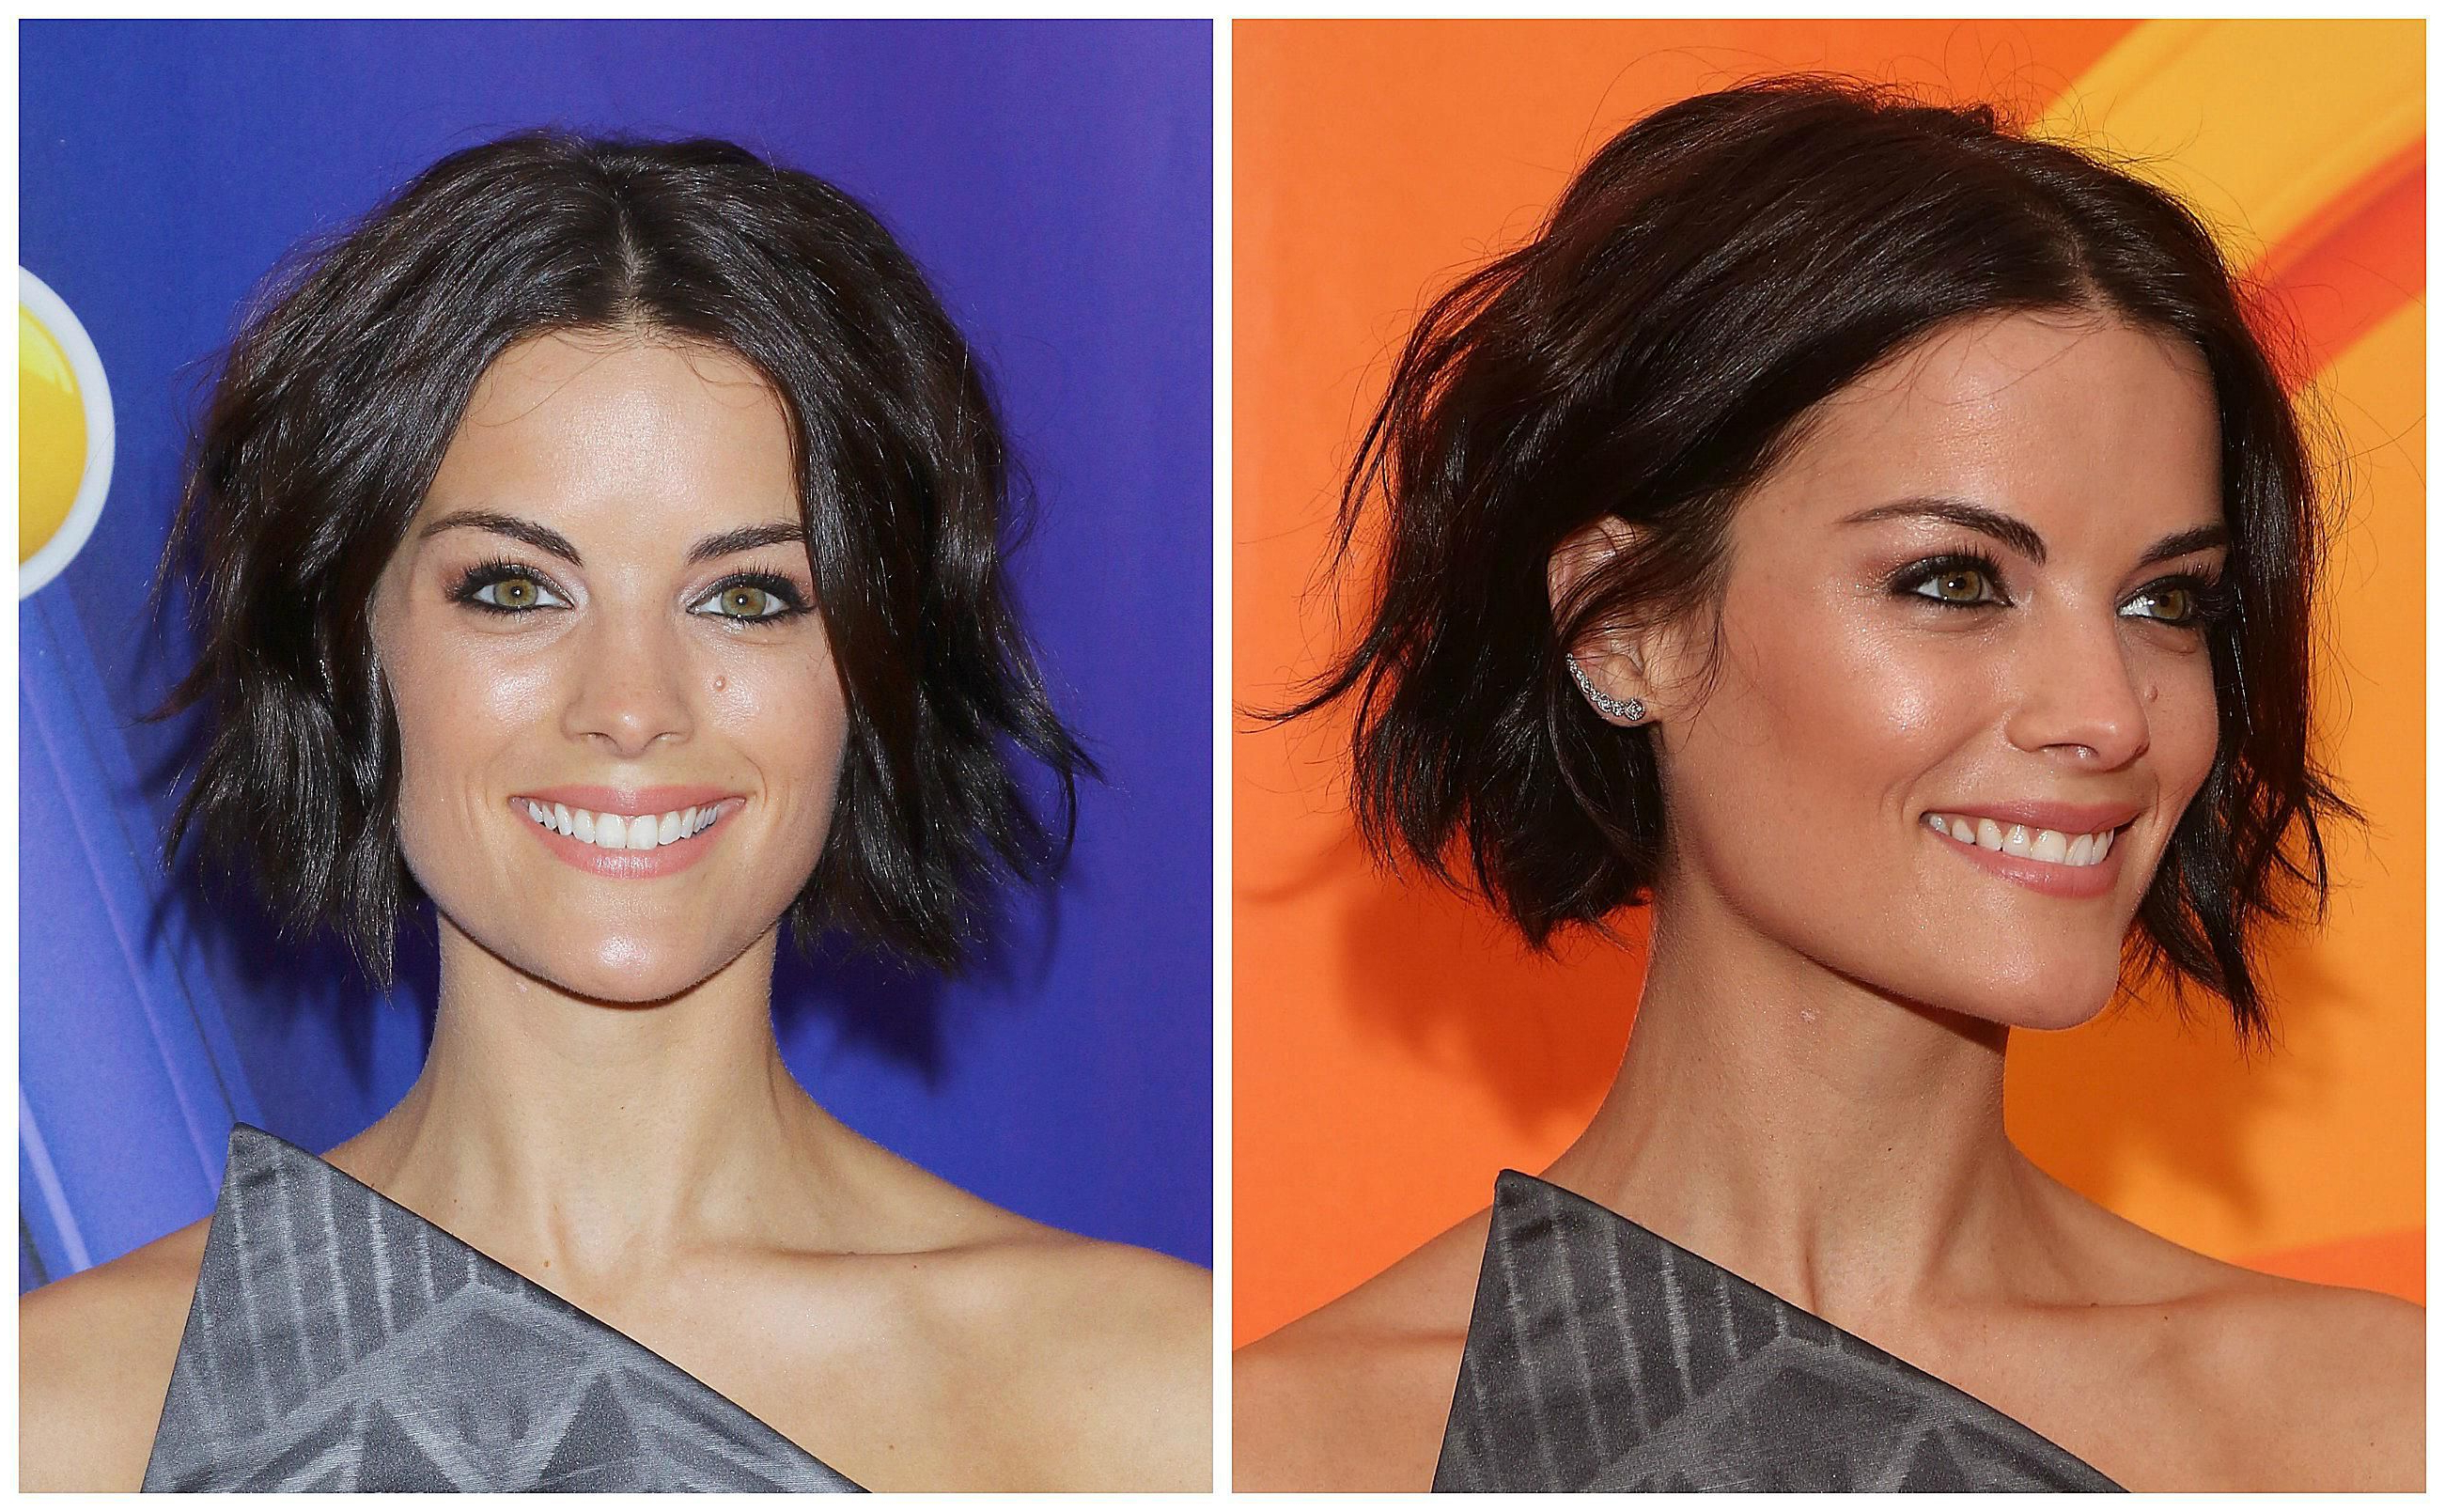 How To Tell If You'd Look Good In Short Hair With Regard To Short Haircuts For Tall Women (View 3 of 25)